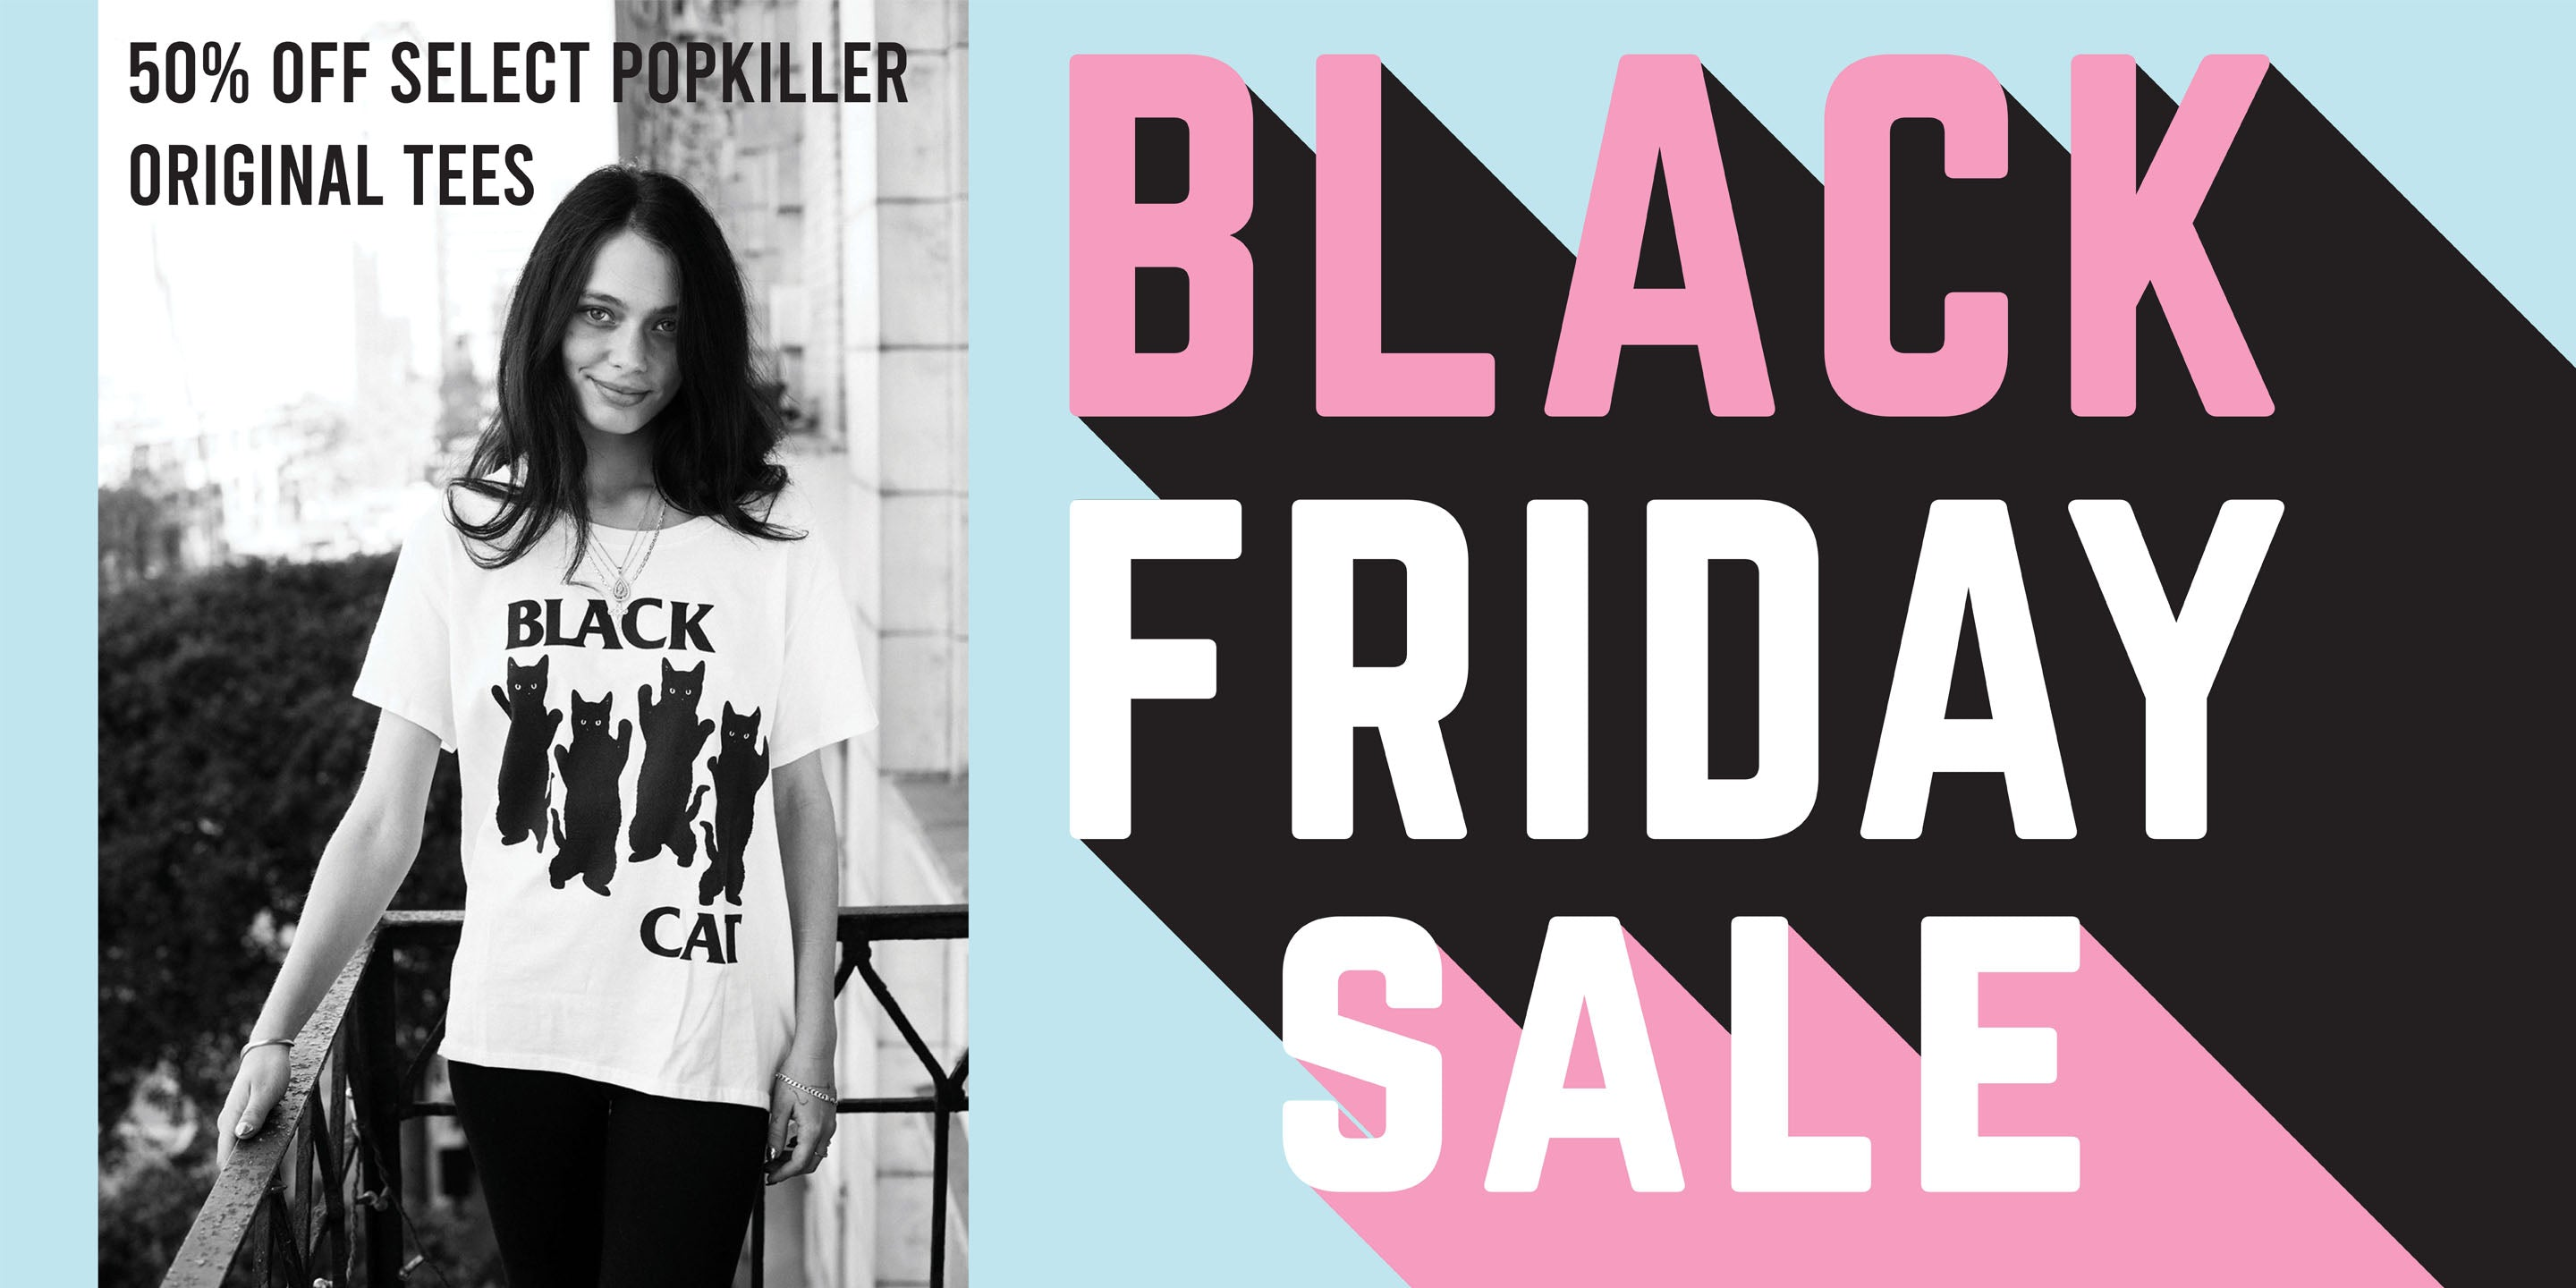 Black Friday 50% off almost all Popkiller tees!